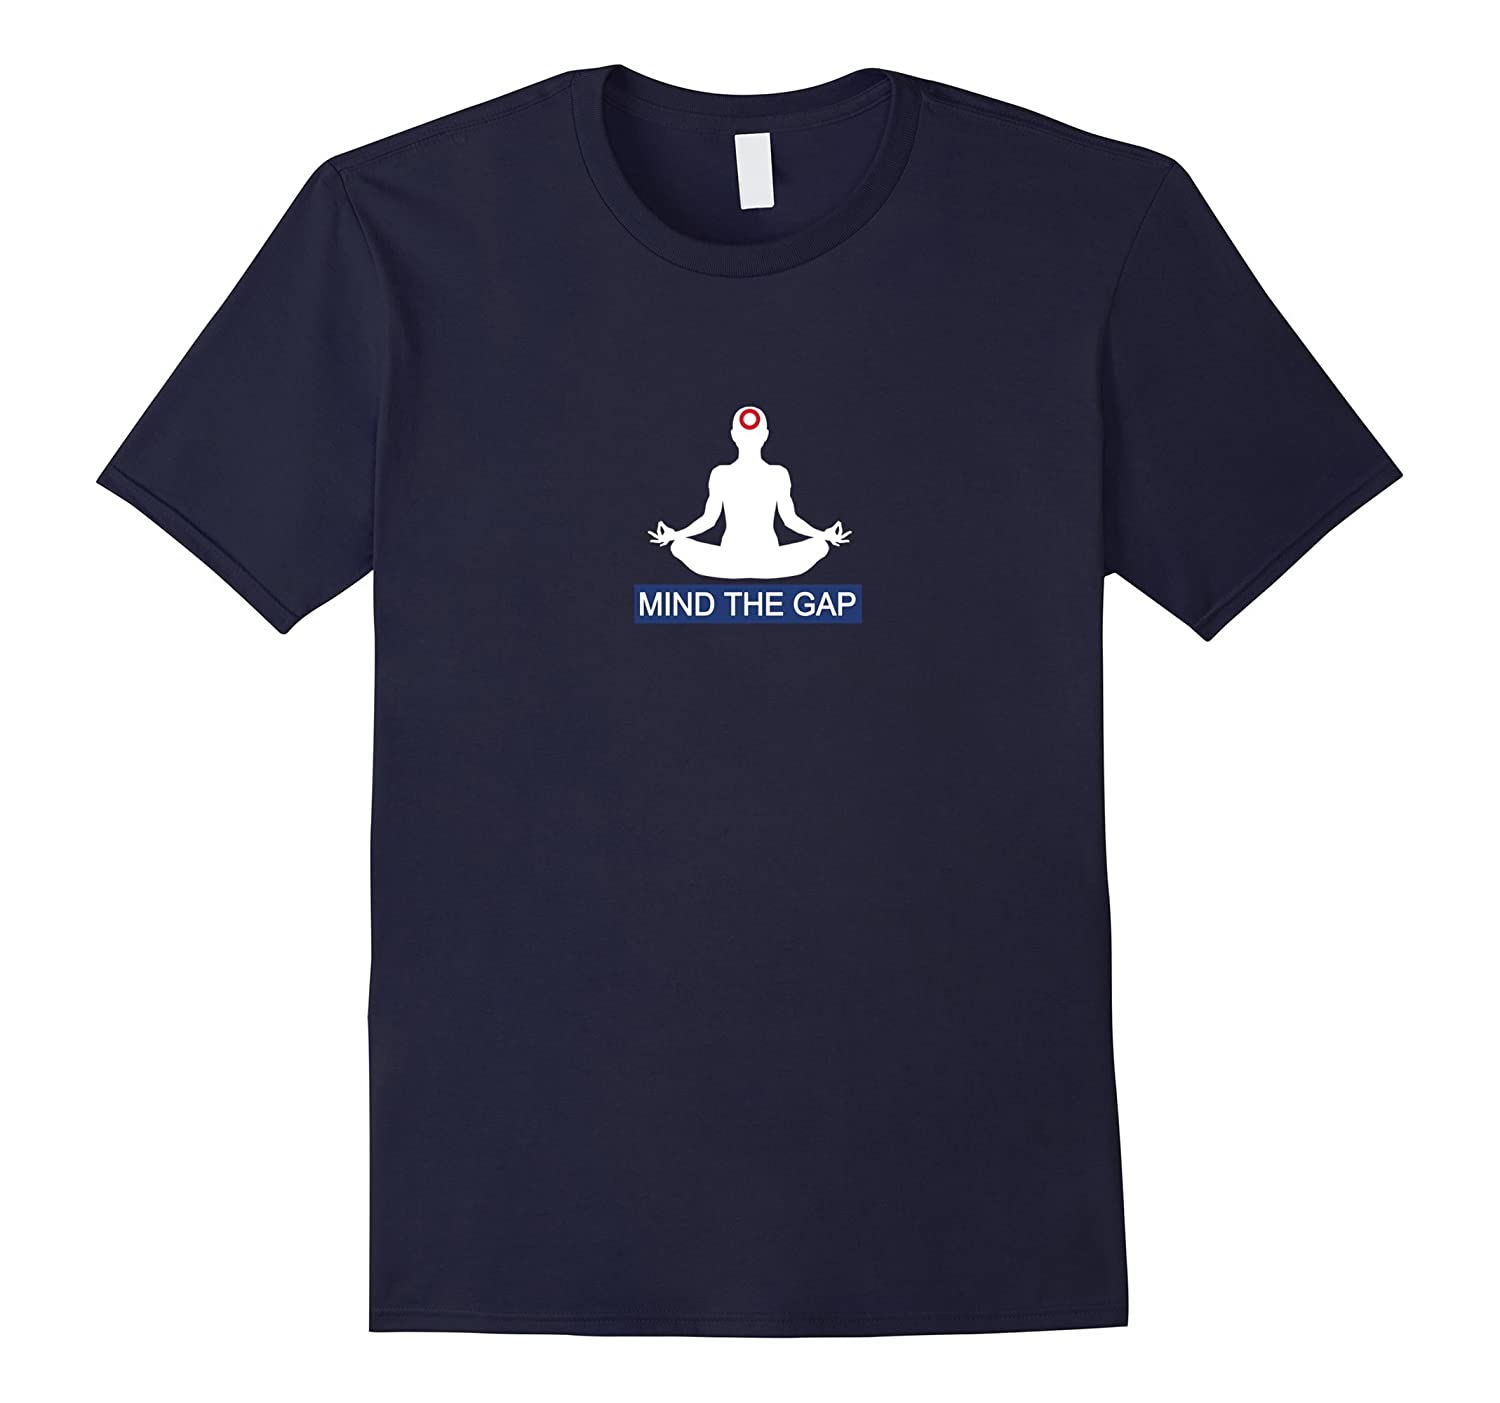 Mind the Gap T Shirt  Mindfulness Meditation Shirt-CD